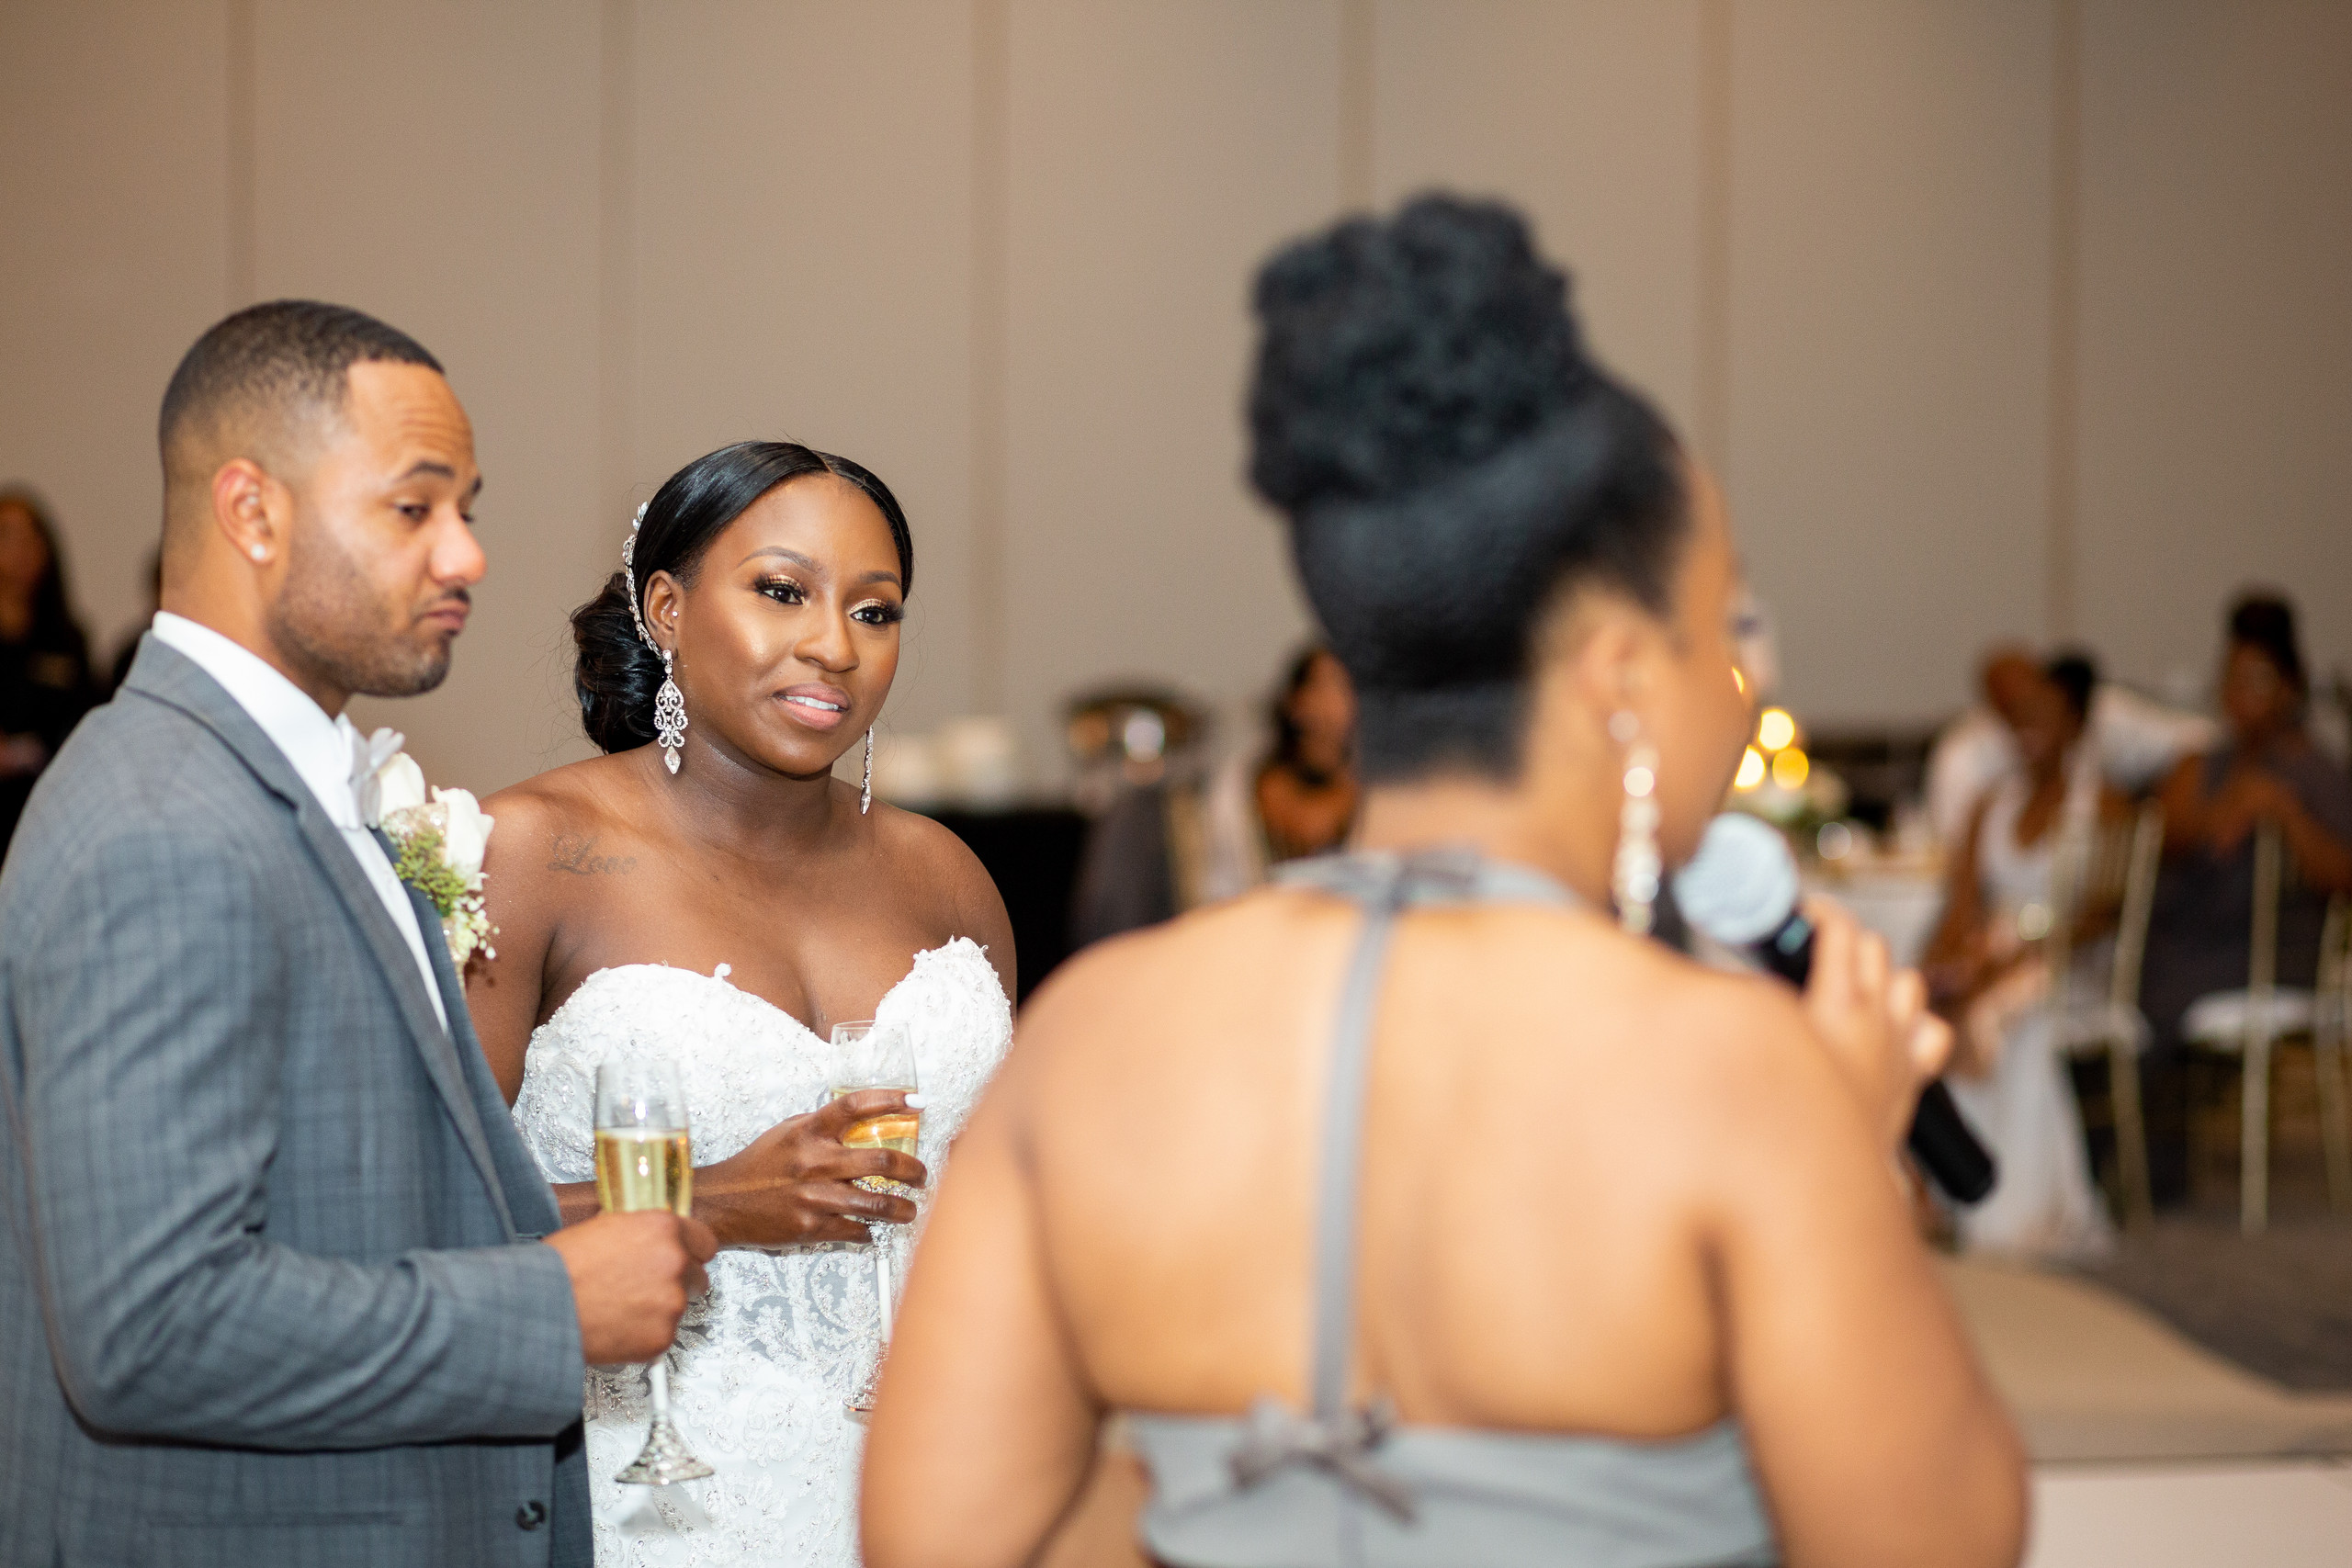 The bride and groom take in the maid of honor's speech and toast during the wedding reception at the Hilton Main in Norfolk, Virginia.